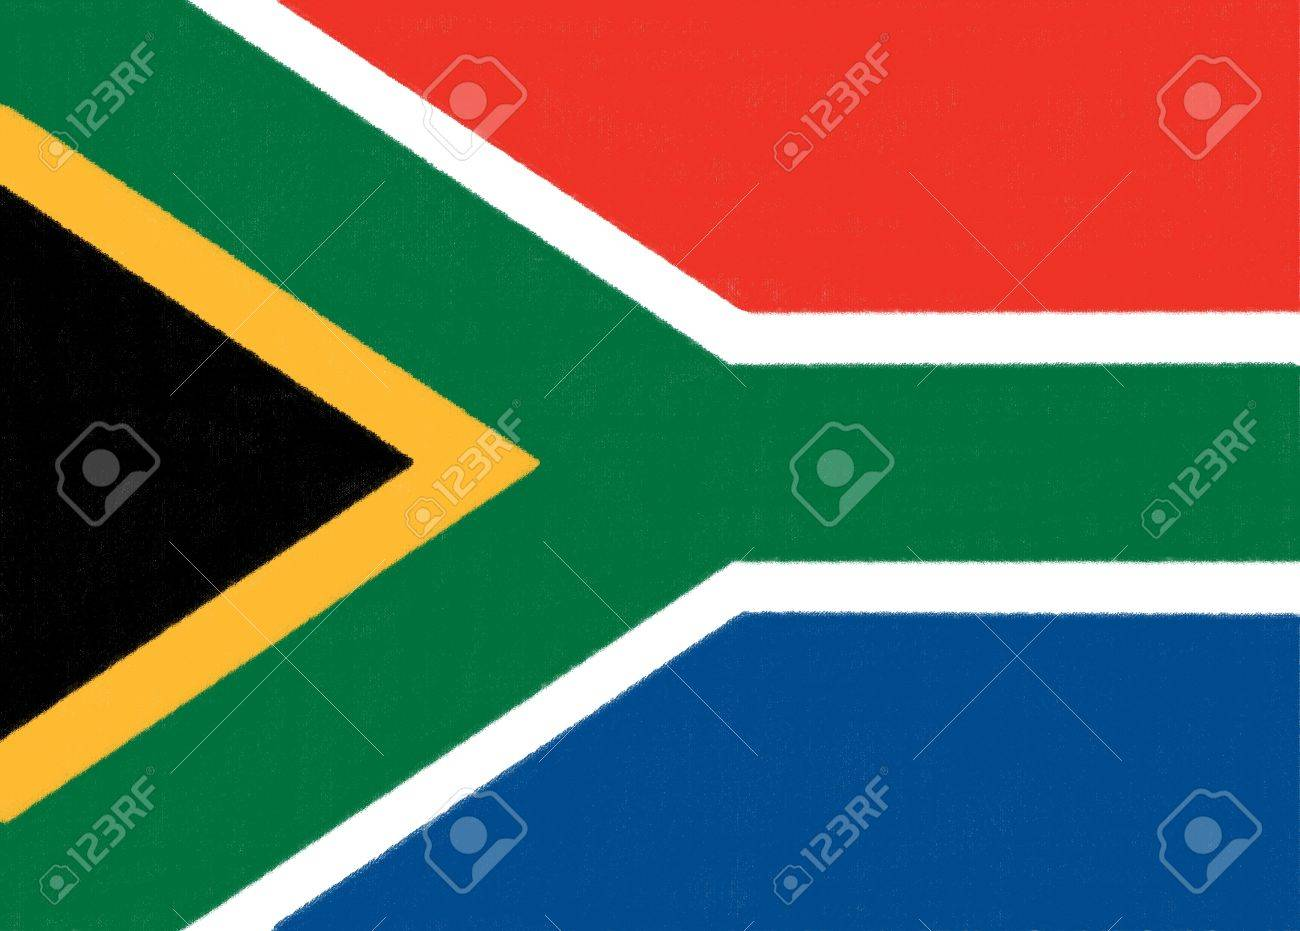 South Africa flag drawing by pastel on charcoal paper Stock Photo - 12100651